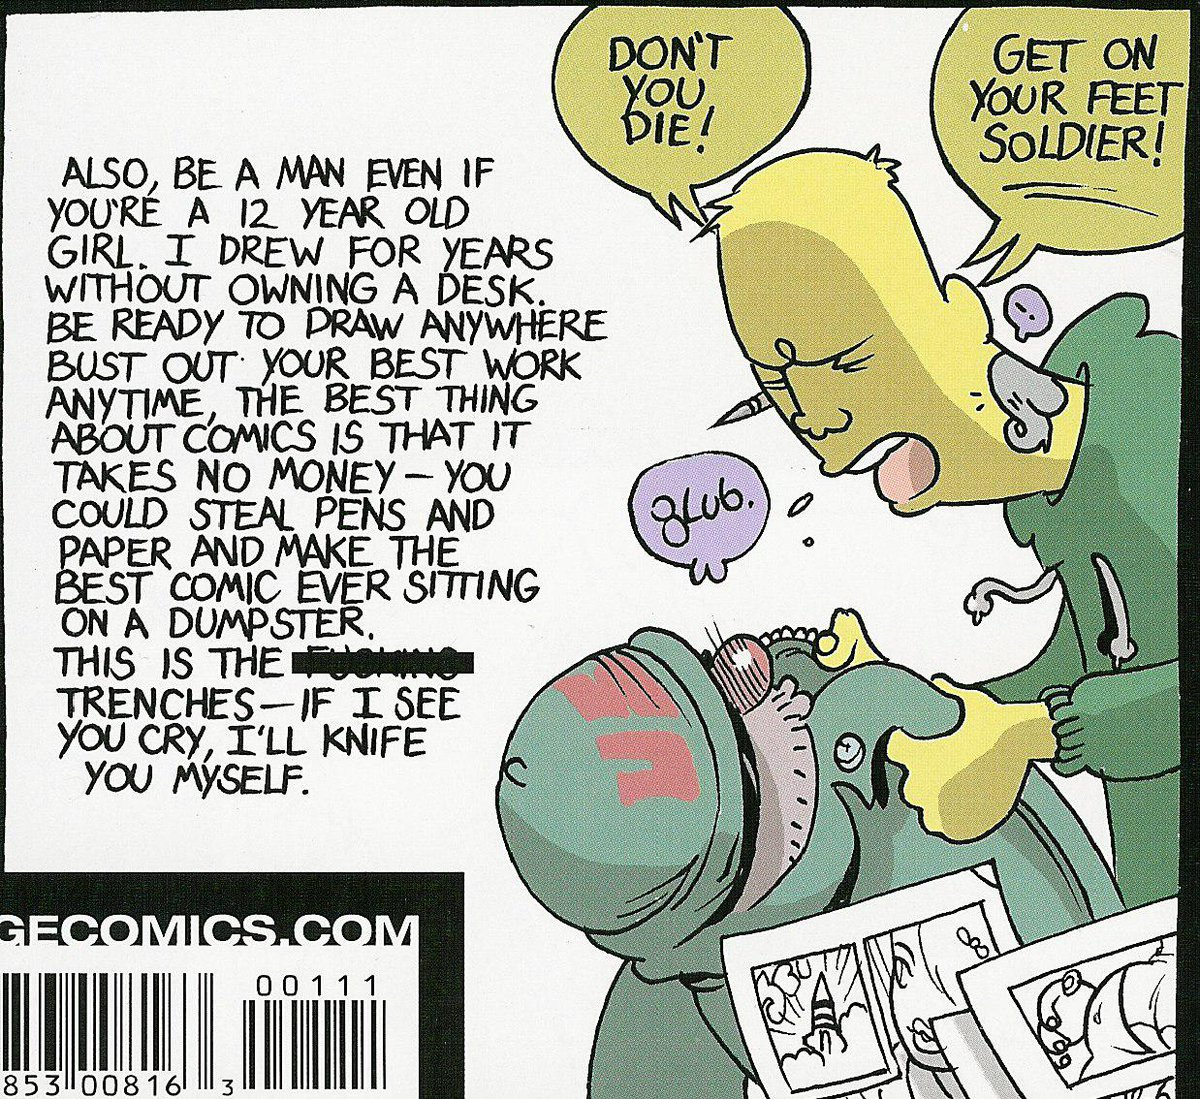 one of my favorite pieces ever about comics - from Brandon Graham @royalboiler Anyone can make comics. #makecomics https://t.co/Kltf9flNvq